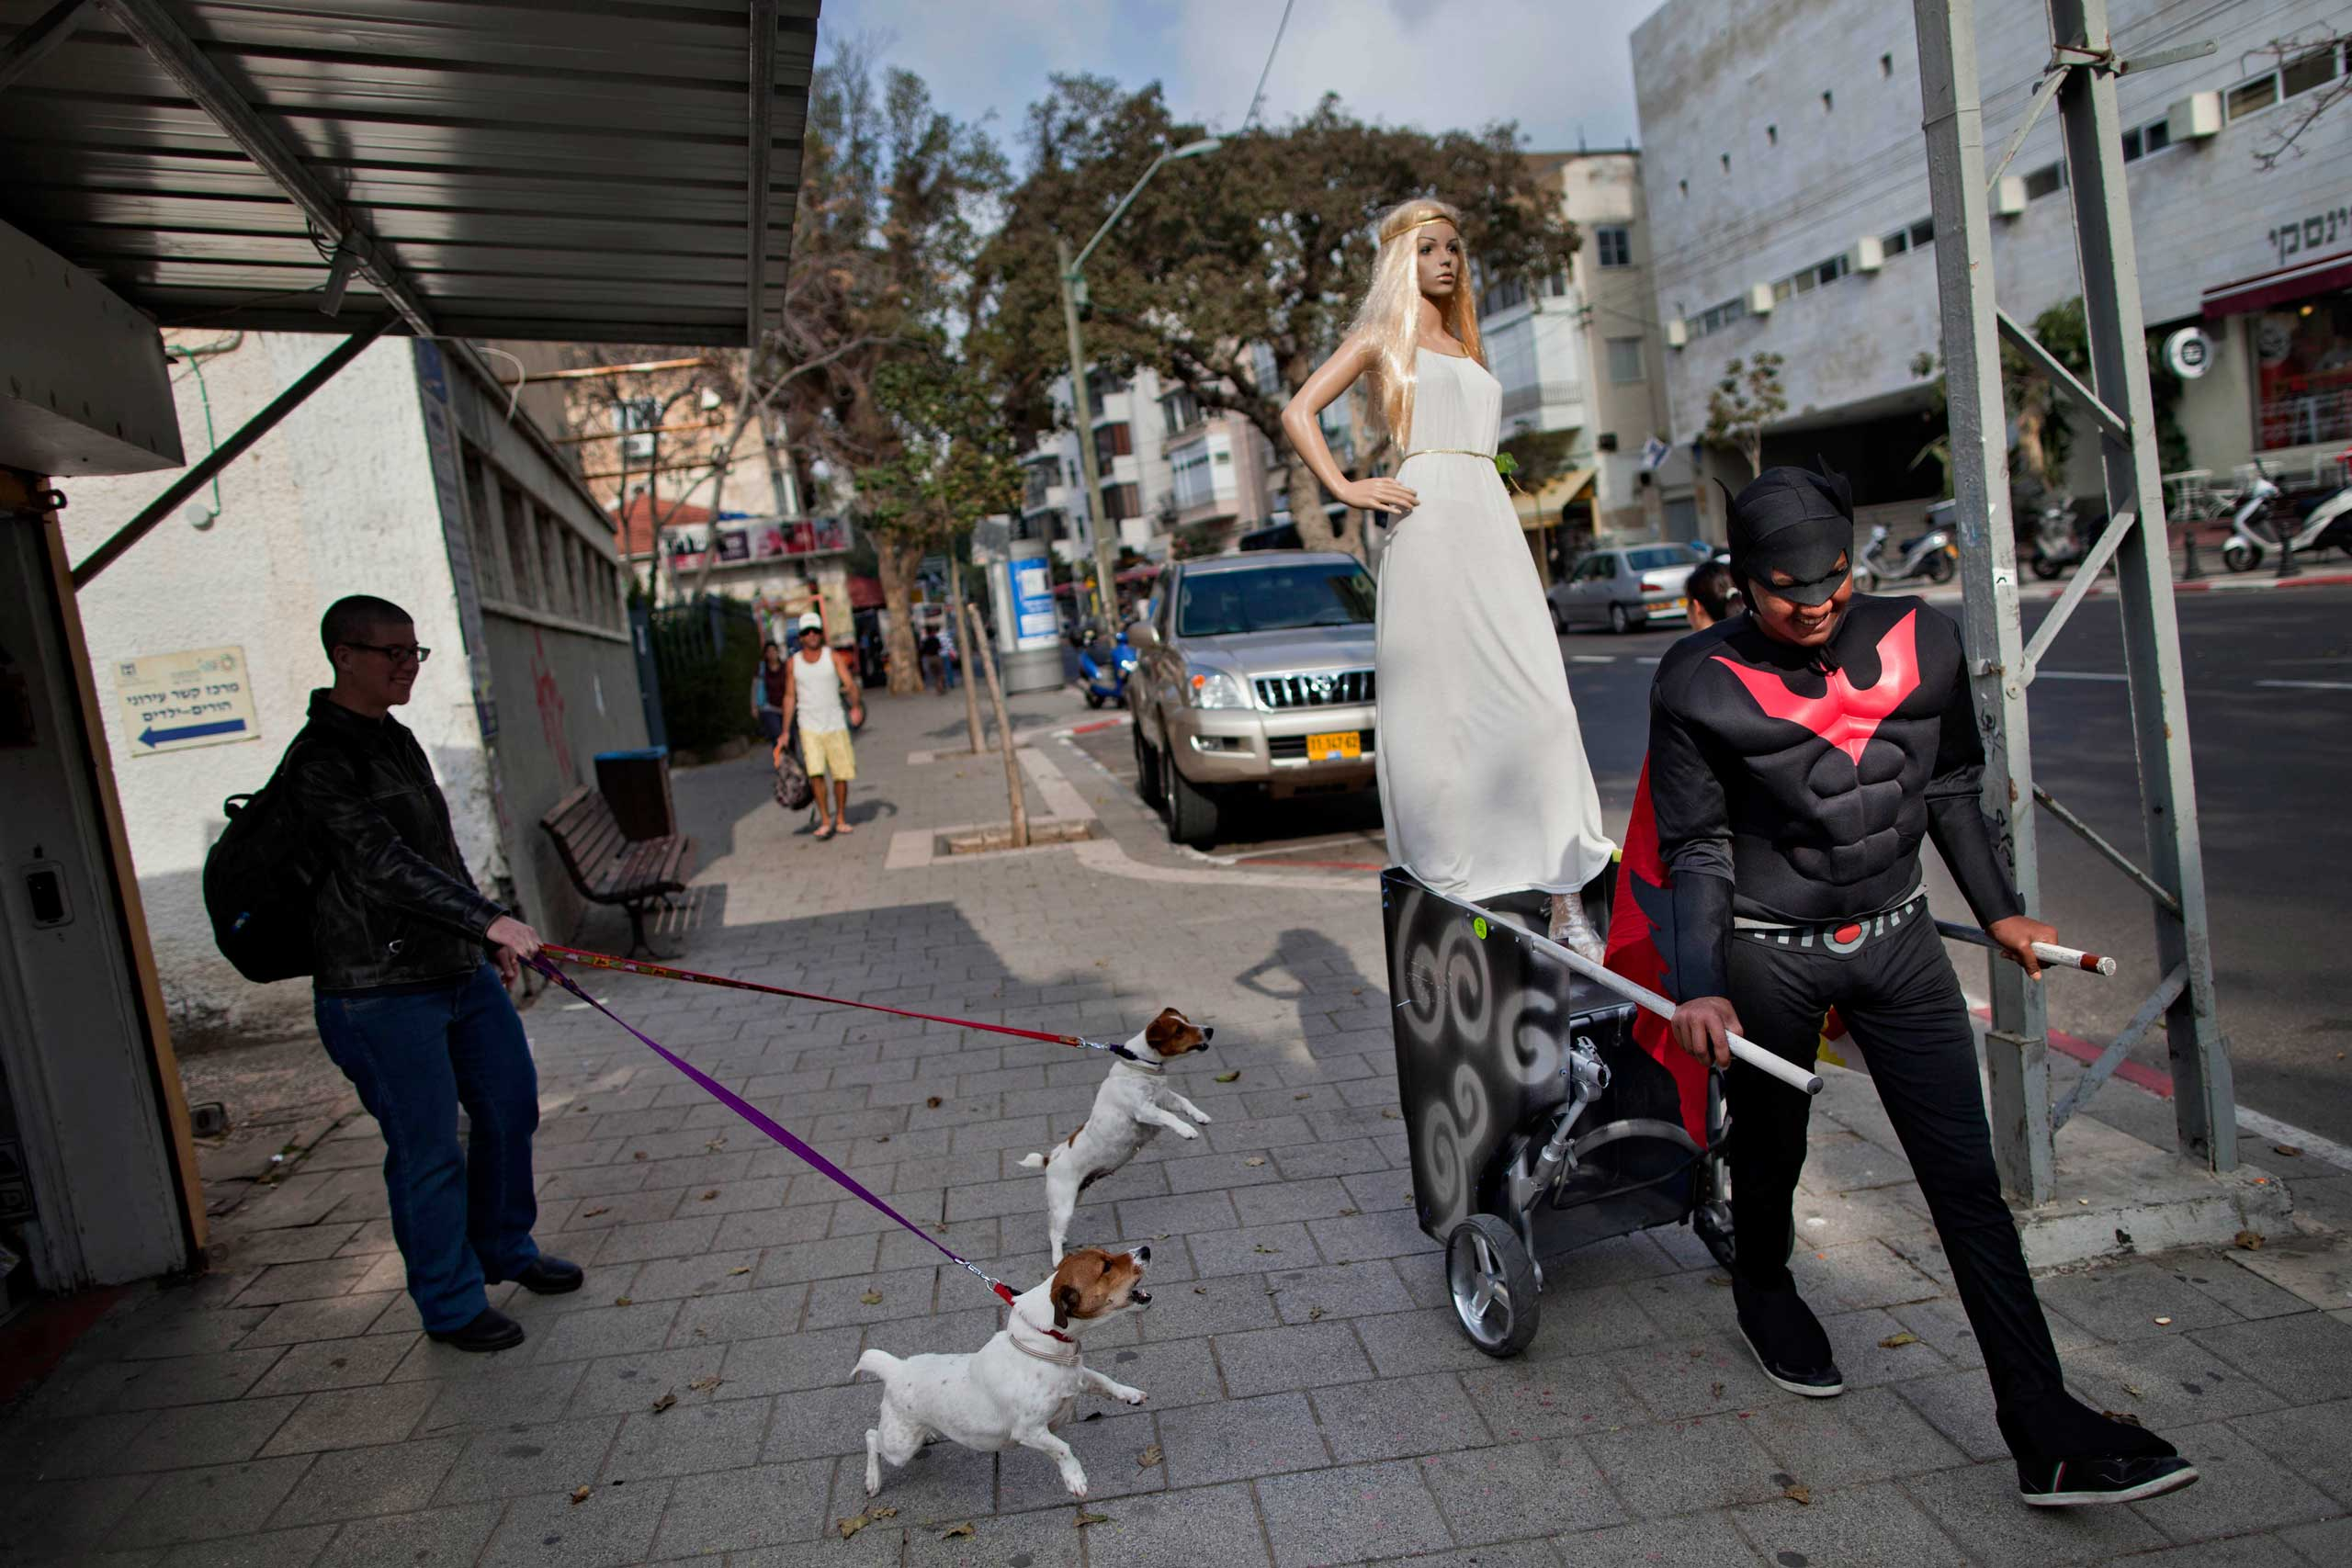 A costume shop employee, dressed as batman, pulls a cart with a mannequin to advertise the shop, ahead of the upcoming Jewish holiday of Purim, in Tel Aviv, Israel.